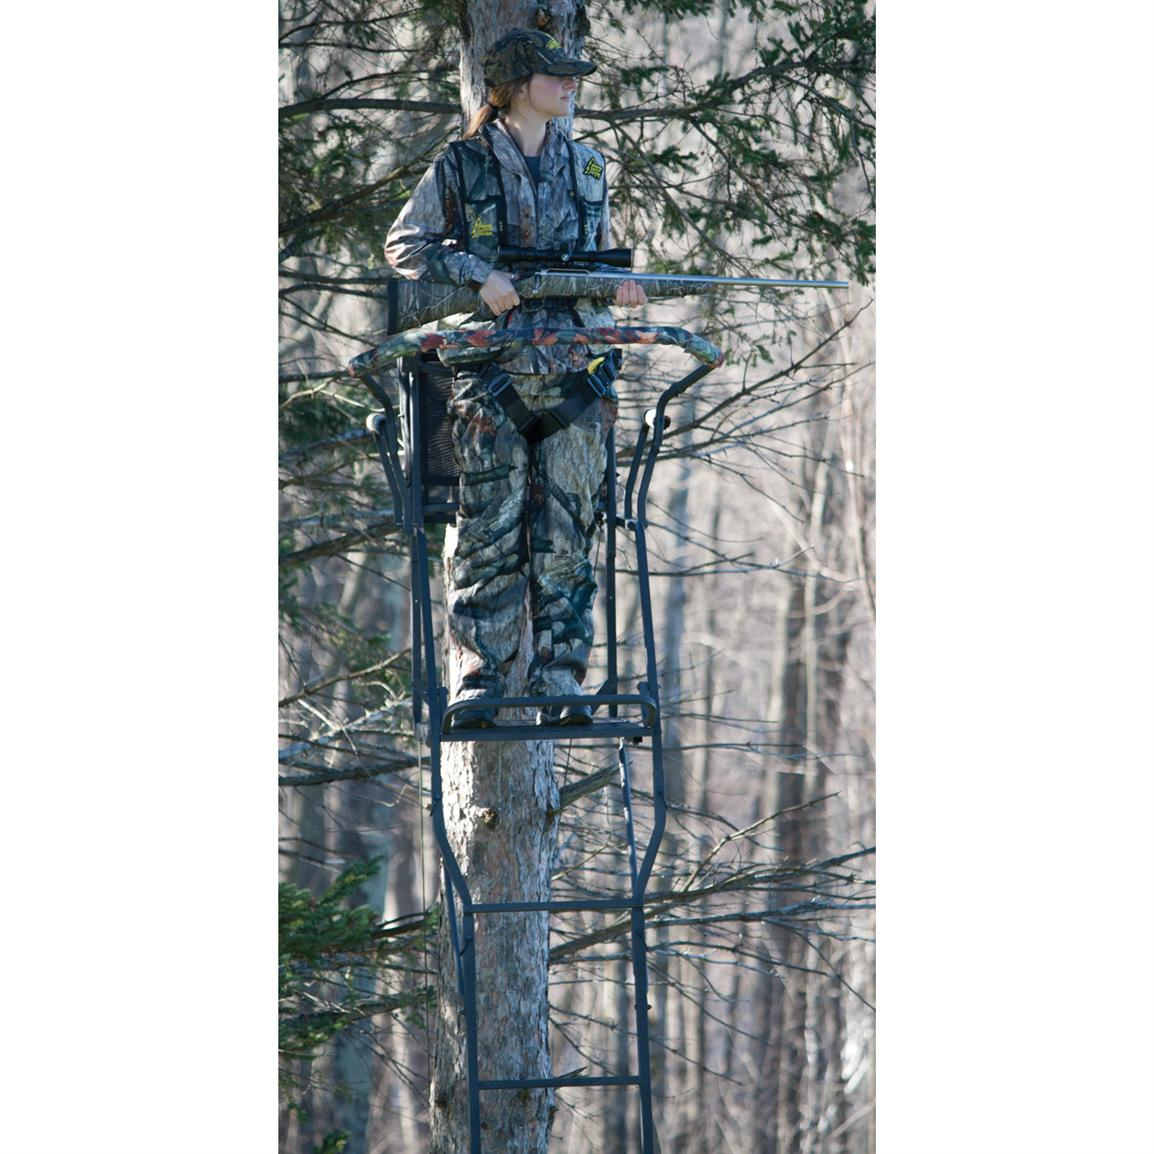 Rivers Edge™ 17 foot Oasis™ 1-man Ladder Stand